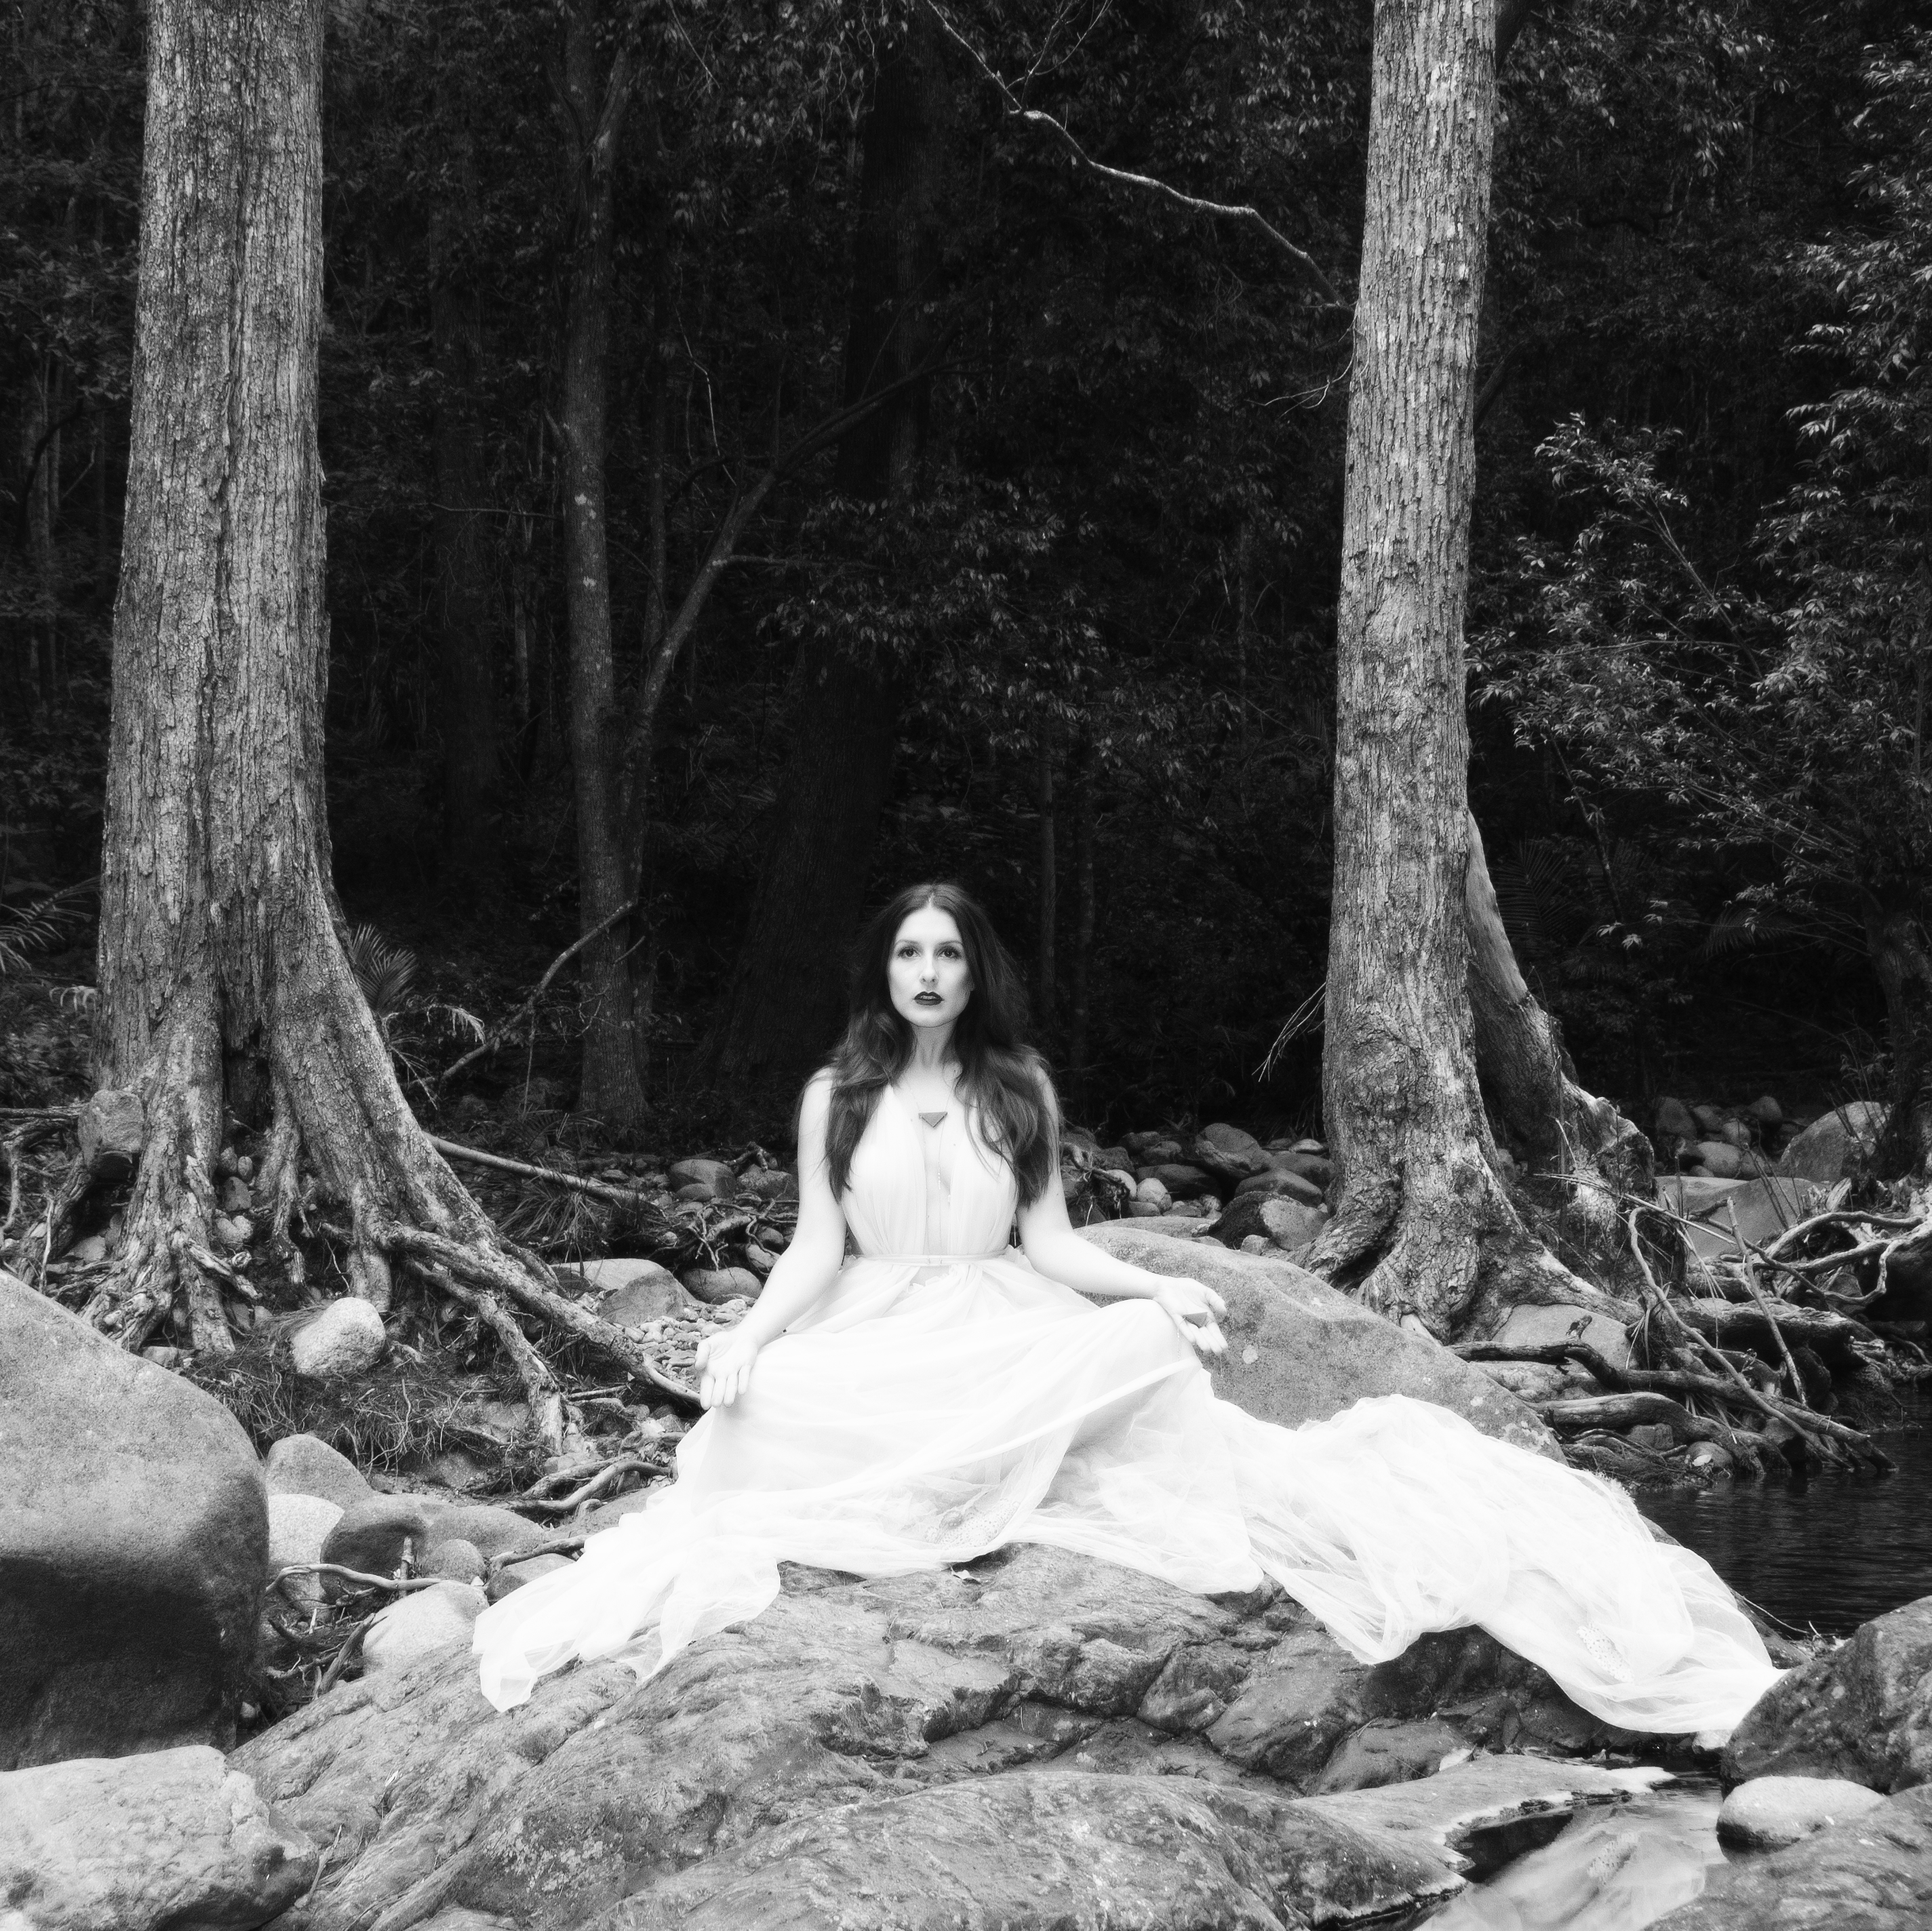 B&W goddess in rain forest